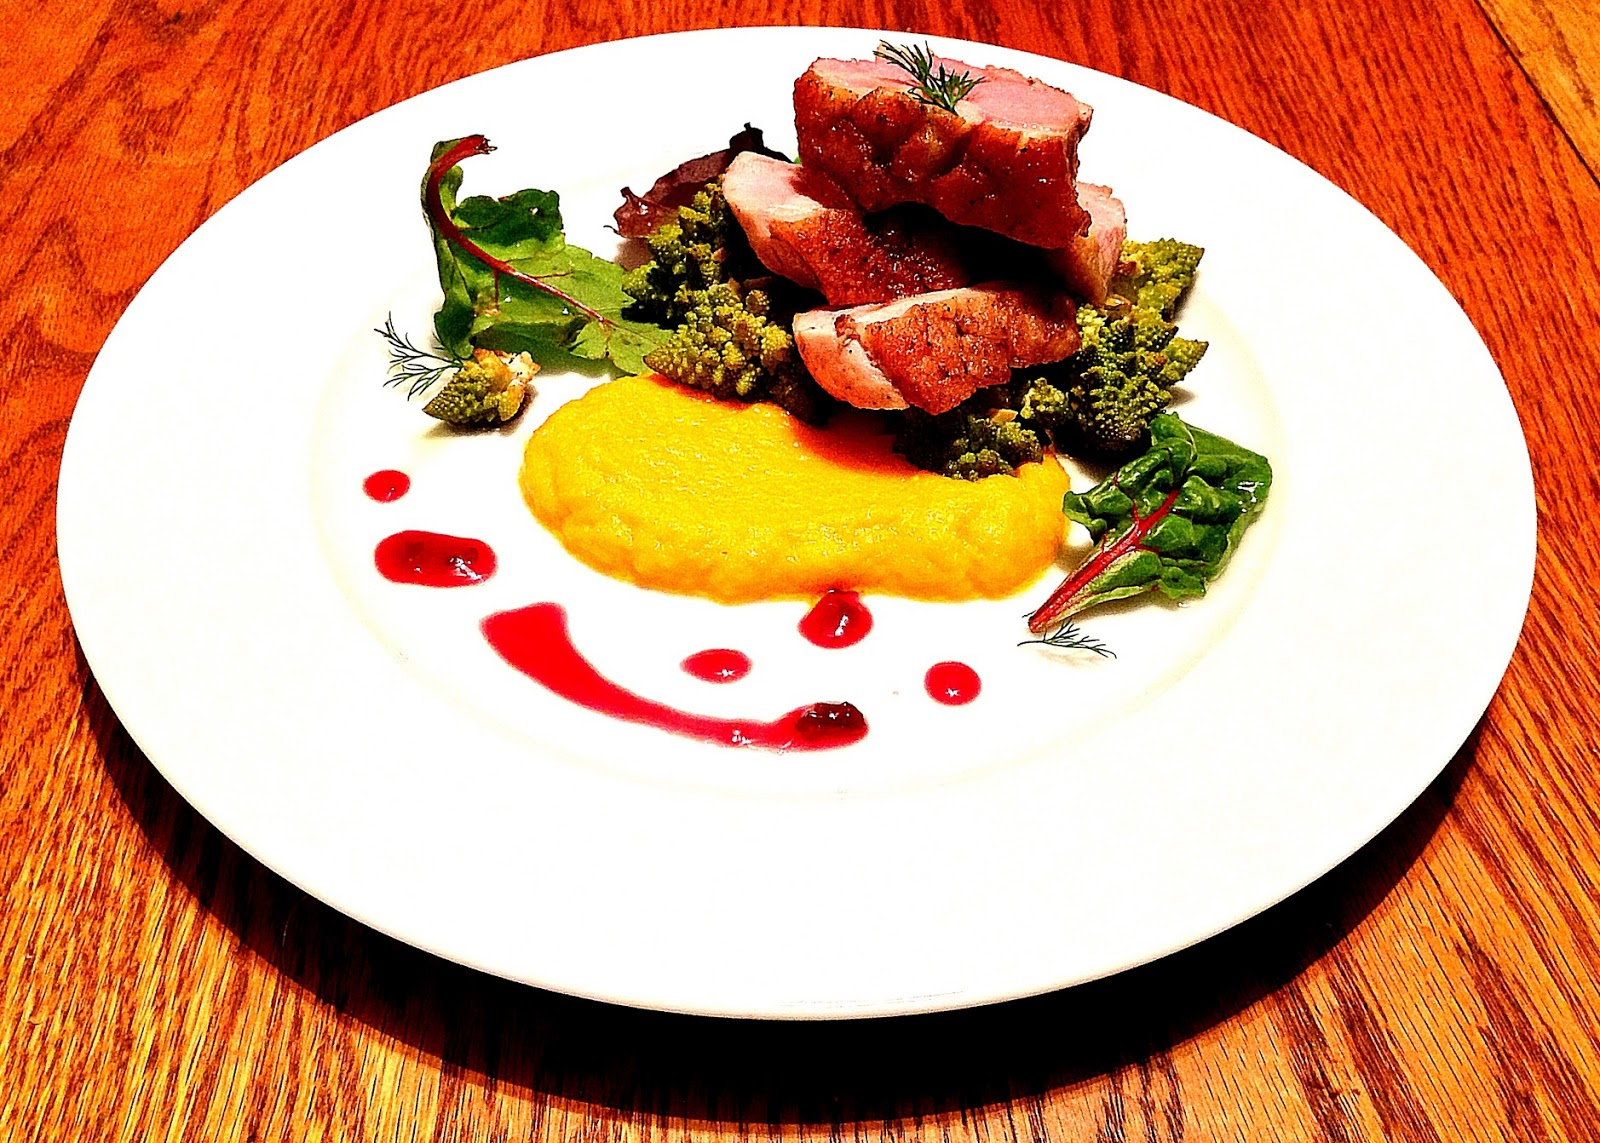 Gastrique Cuisine The Graffiti Cookery Recipe Roasted Duck Cherry